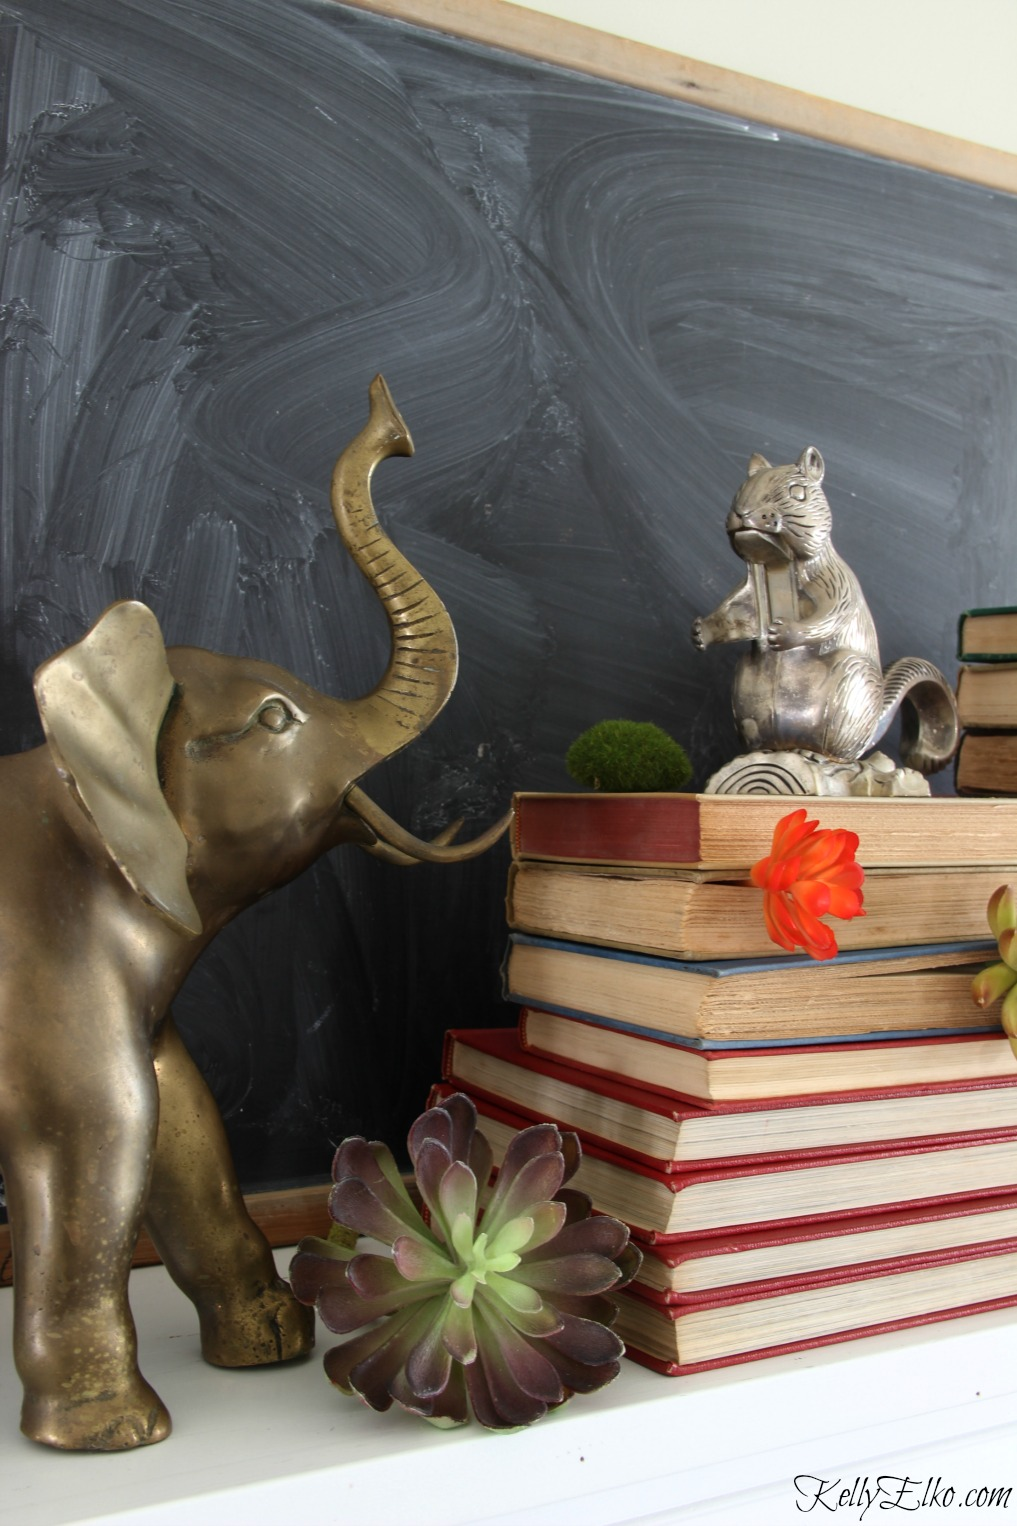 Vintage brass animals, books and a chalkboard combine in one stunning winter mantel kellyelko.com